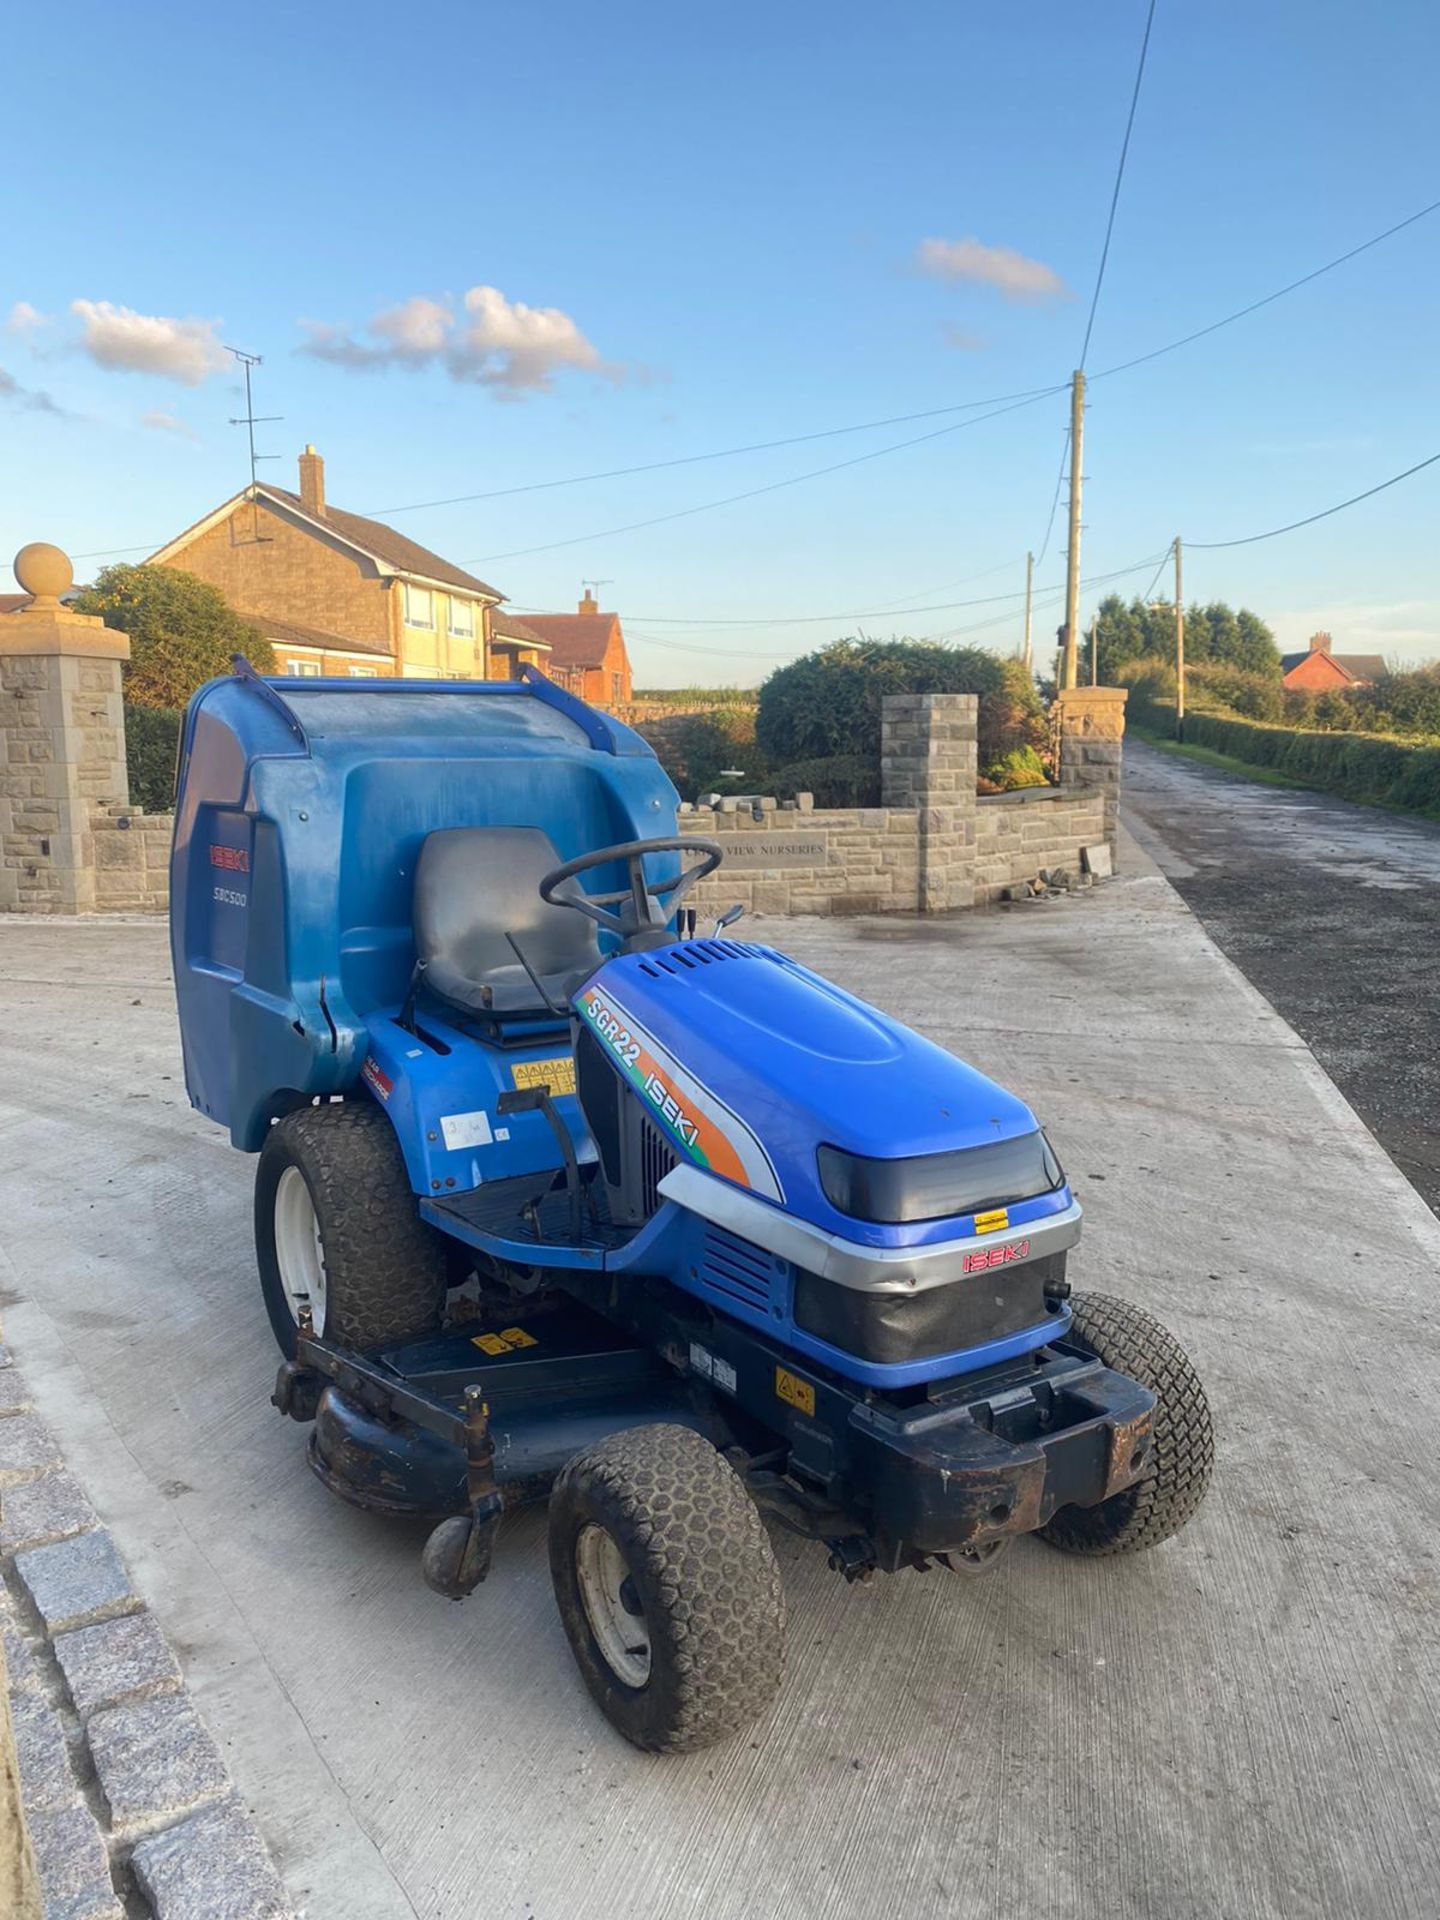 Lot 48 - ISEKI SGR22 RIDE ON LAWN MOWER, RUNS AND WORKS, CUTS AND COLLECTS WELL, LOW HOURS ONLY 860 *NO VAT*